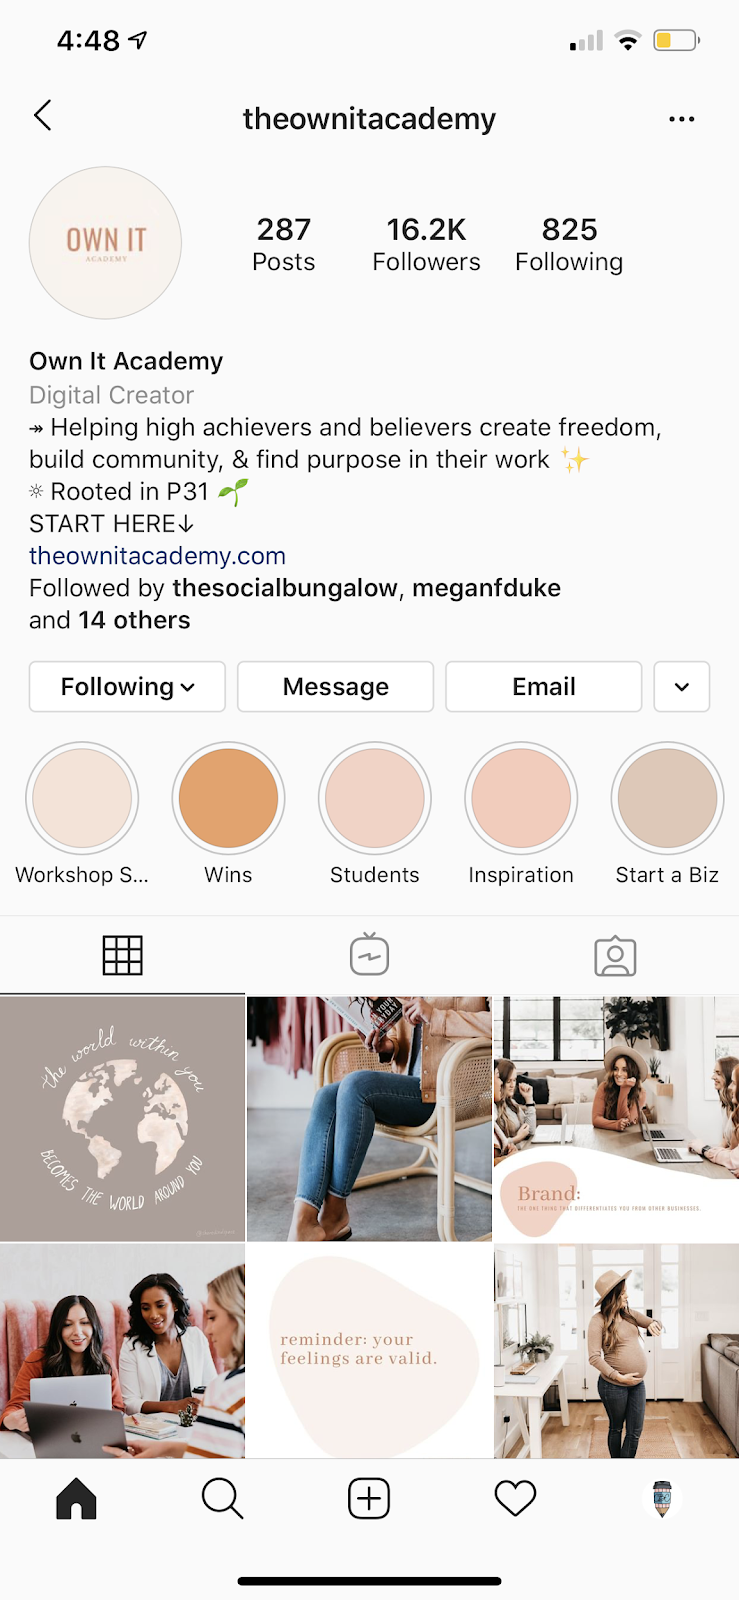 (Tips For Creating the Best Instagram Profile Possible)